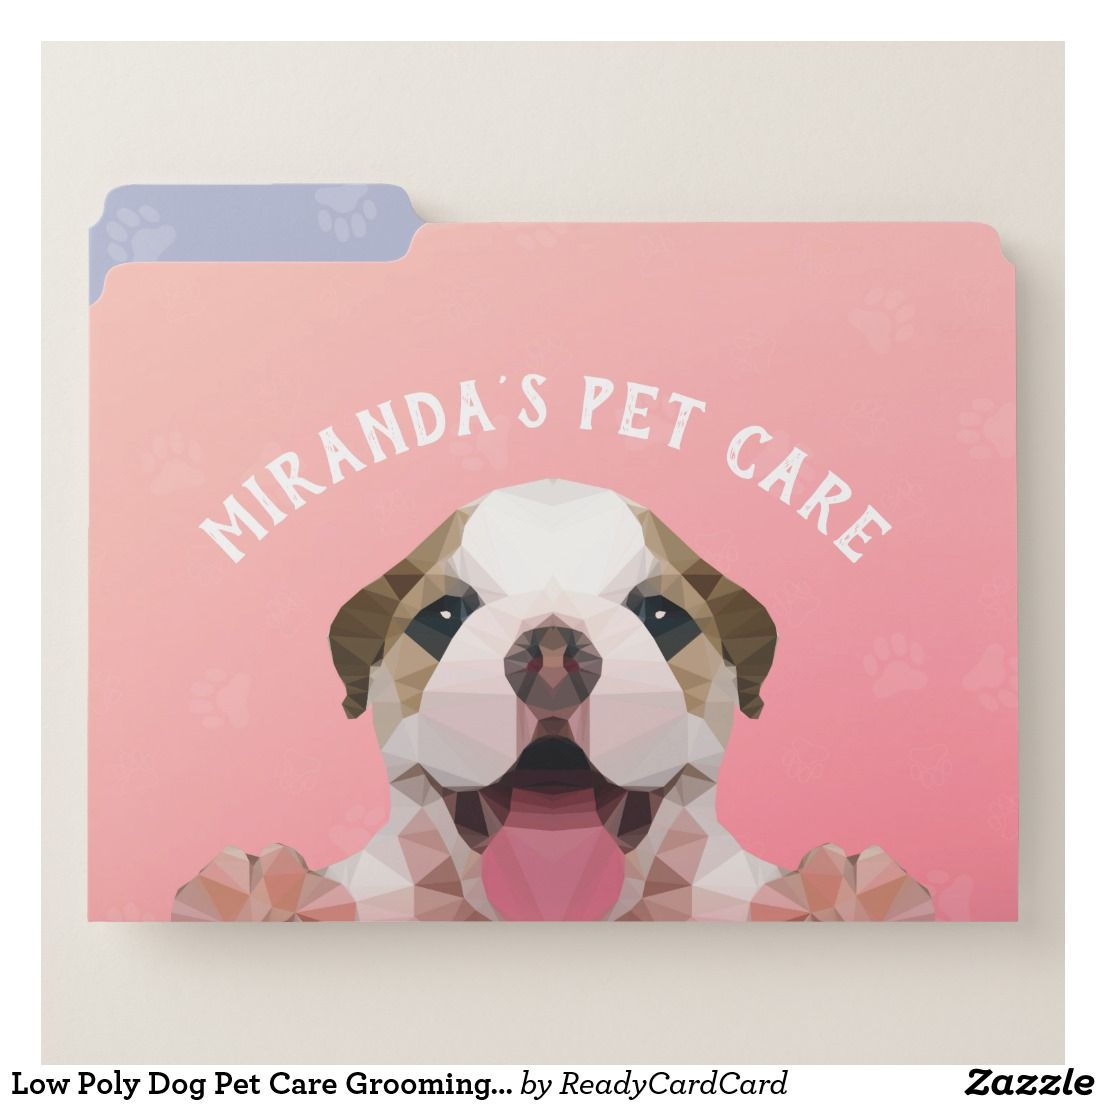 Low Poly Dog Pet Care Grooming Bathing Food Salon File Folder Zazzle Com Pet Care Pet Dogs Pet Clinic